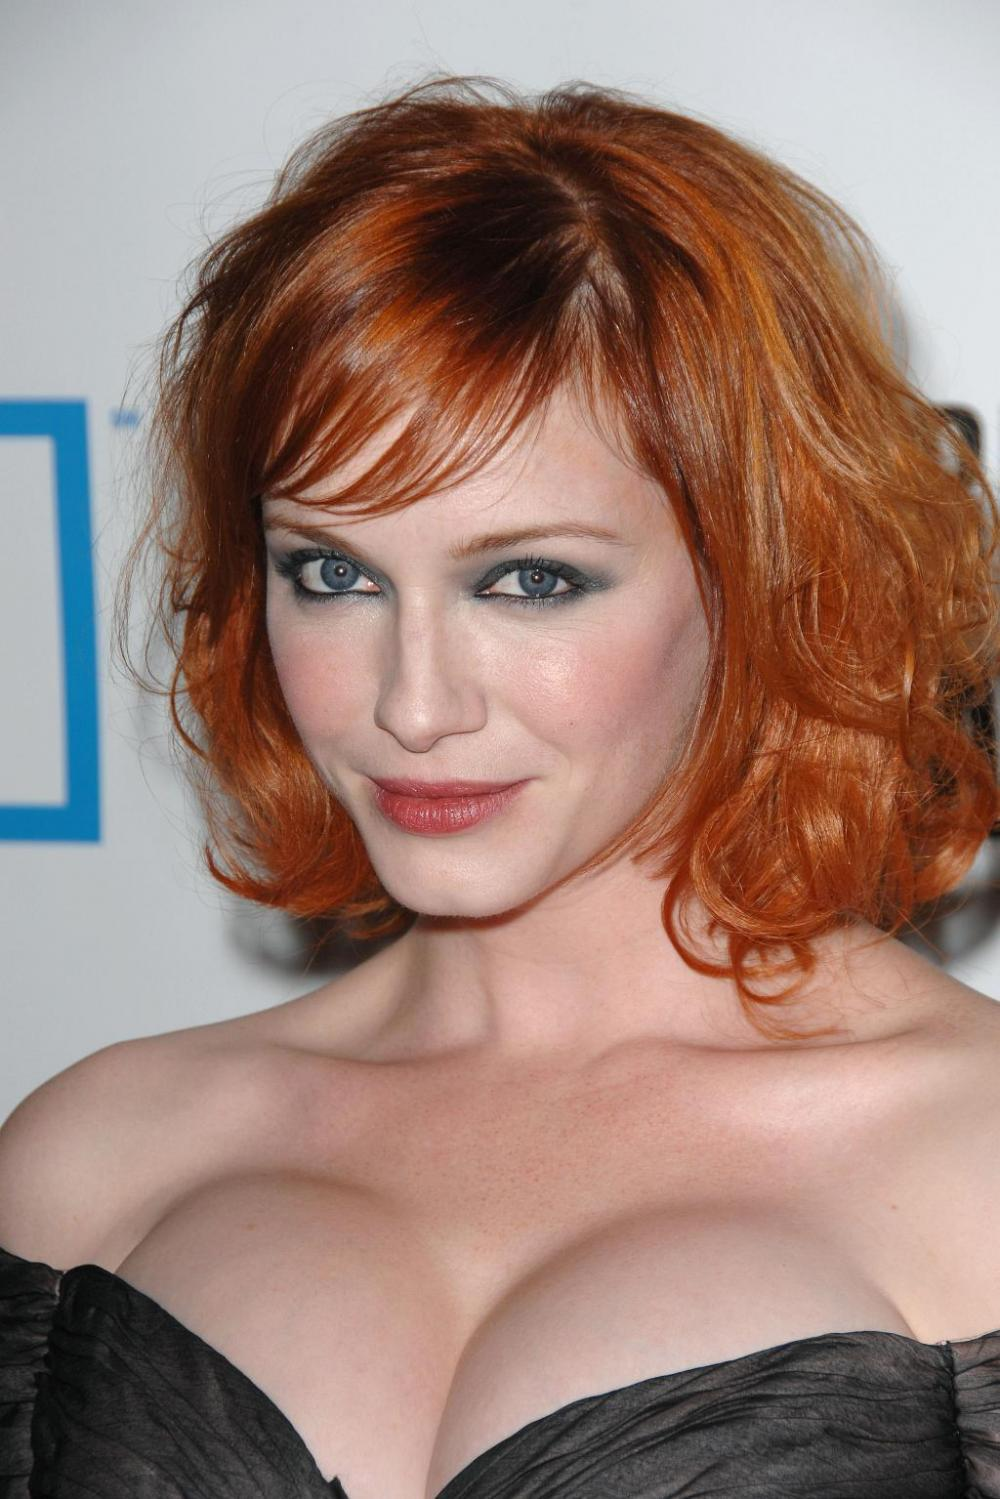 Christina Hendricks Poster